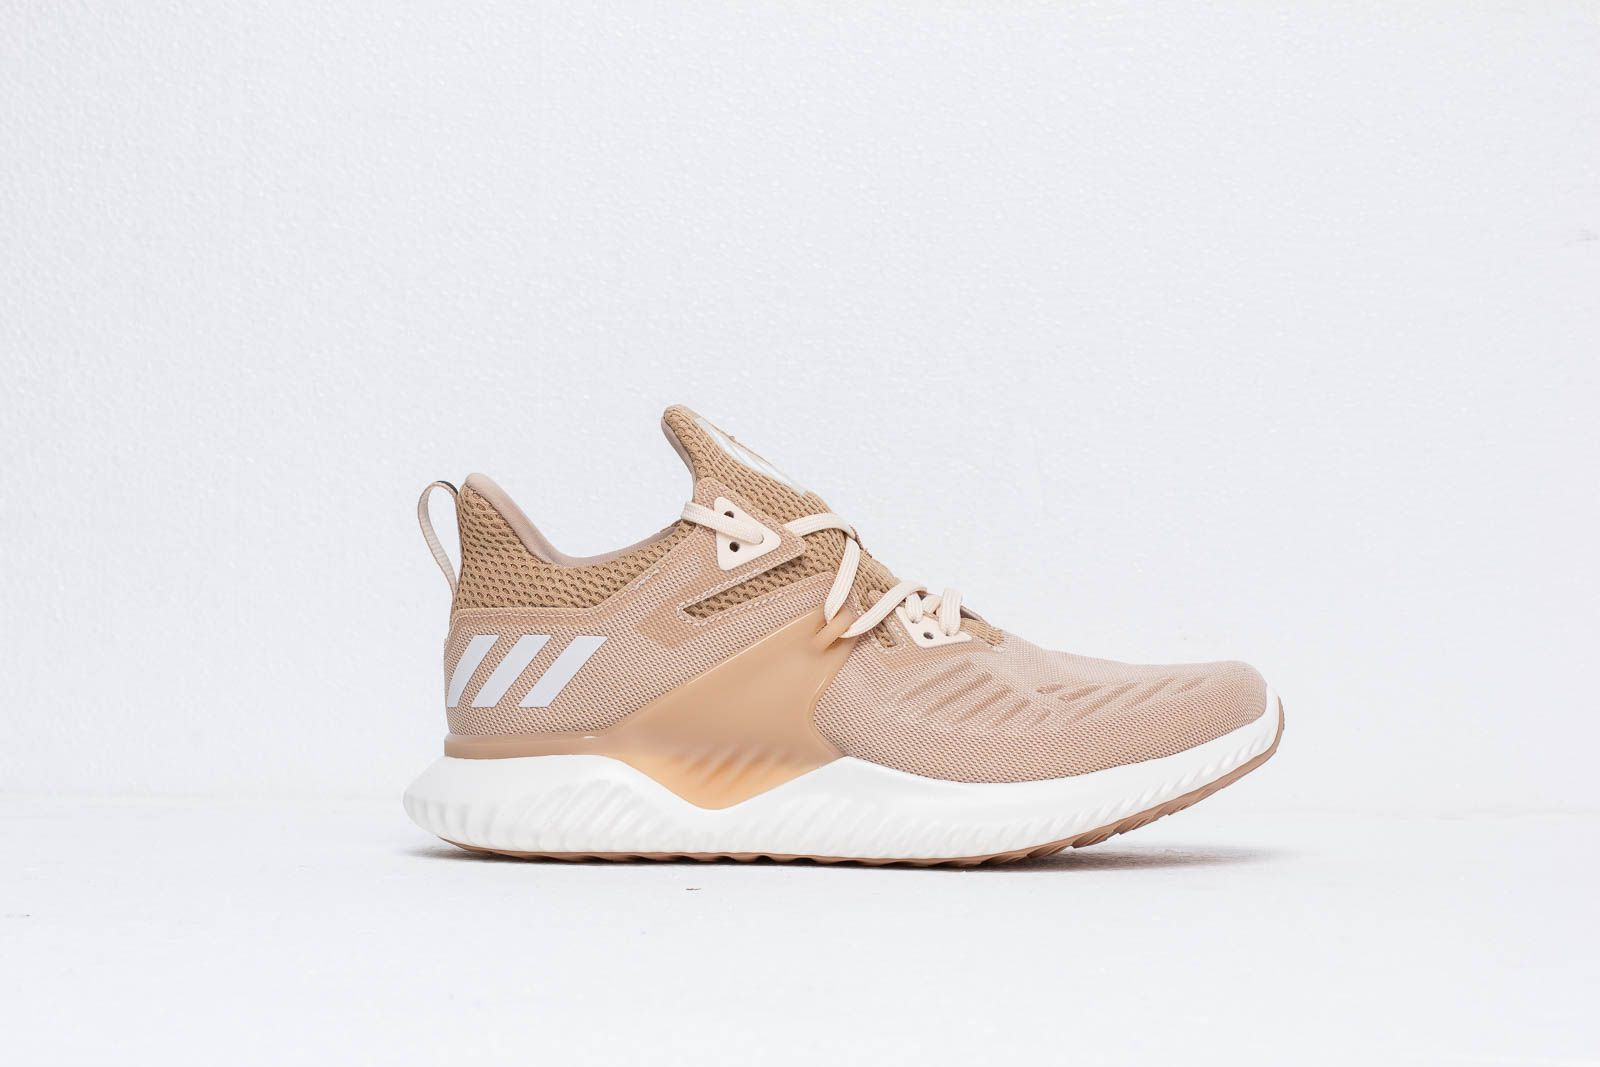 915e91684185f adidas Alphabounce Beyond 2 M Ecrtin  Chalk White  St Pale Nude at a great